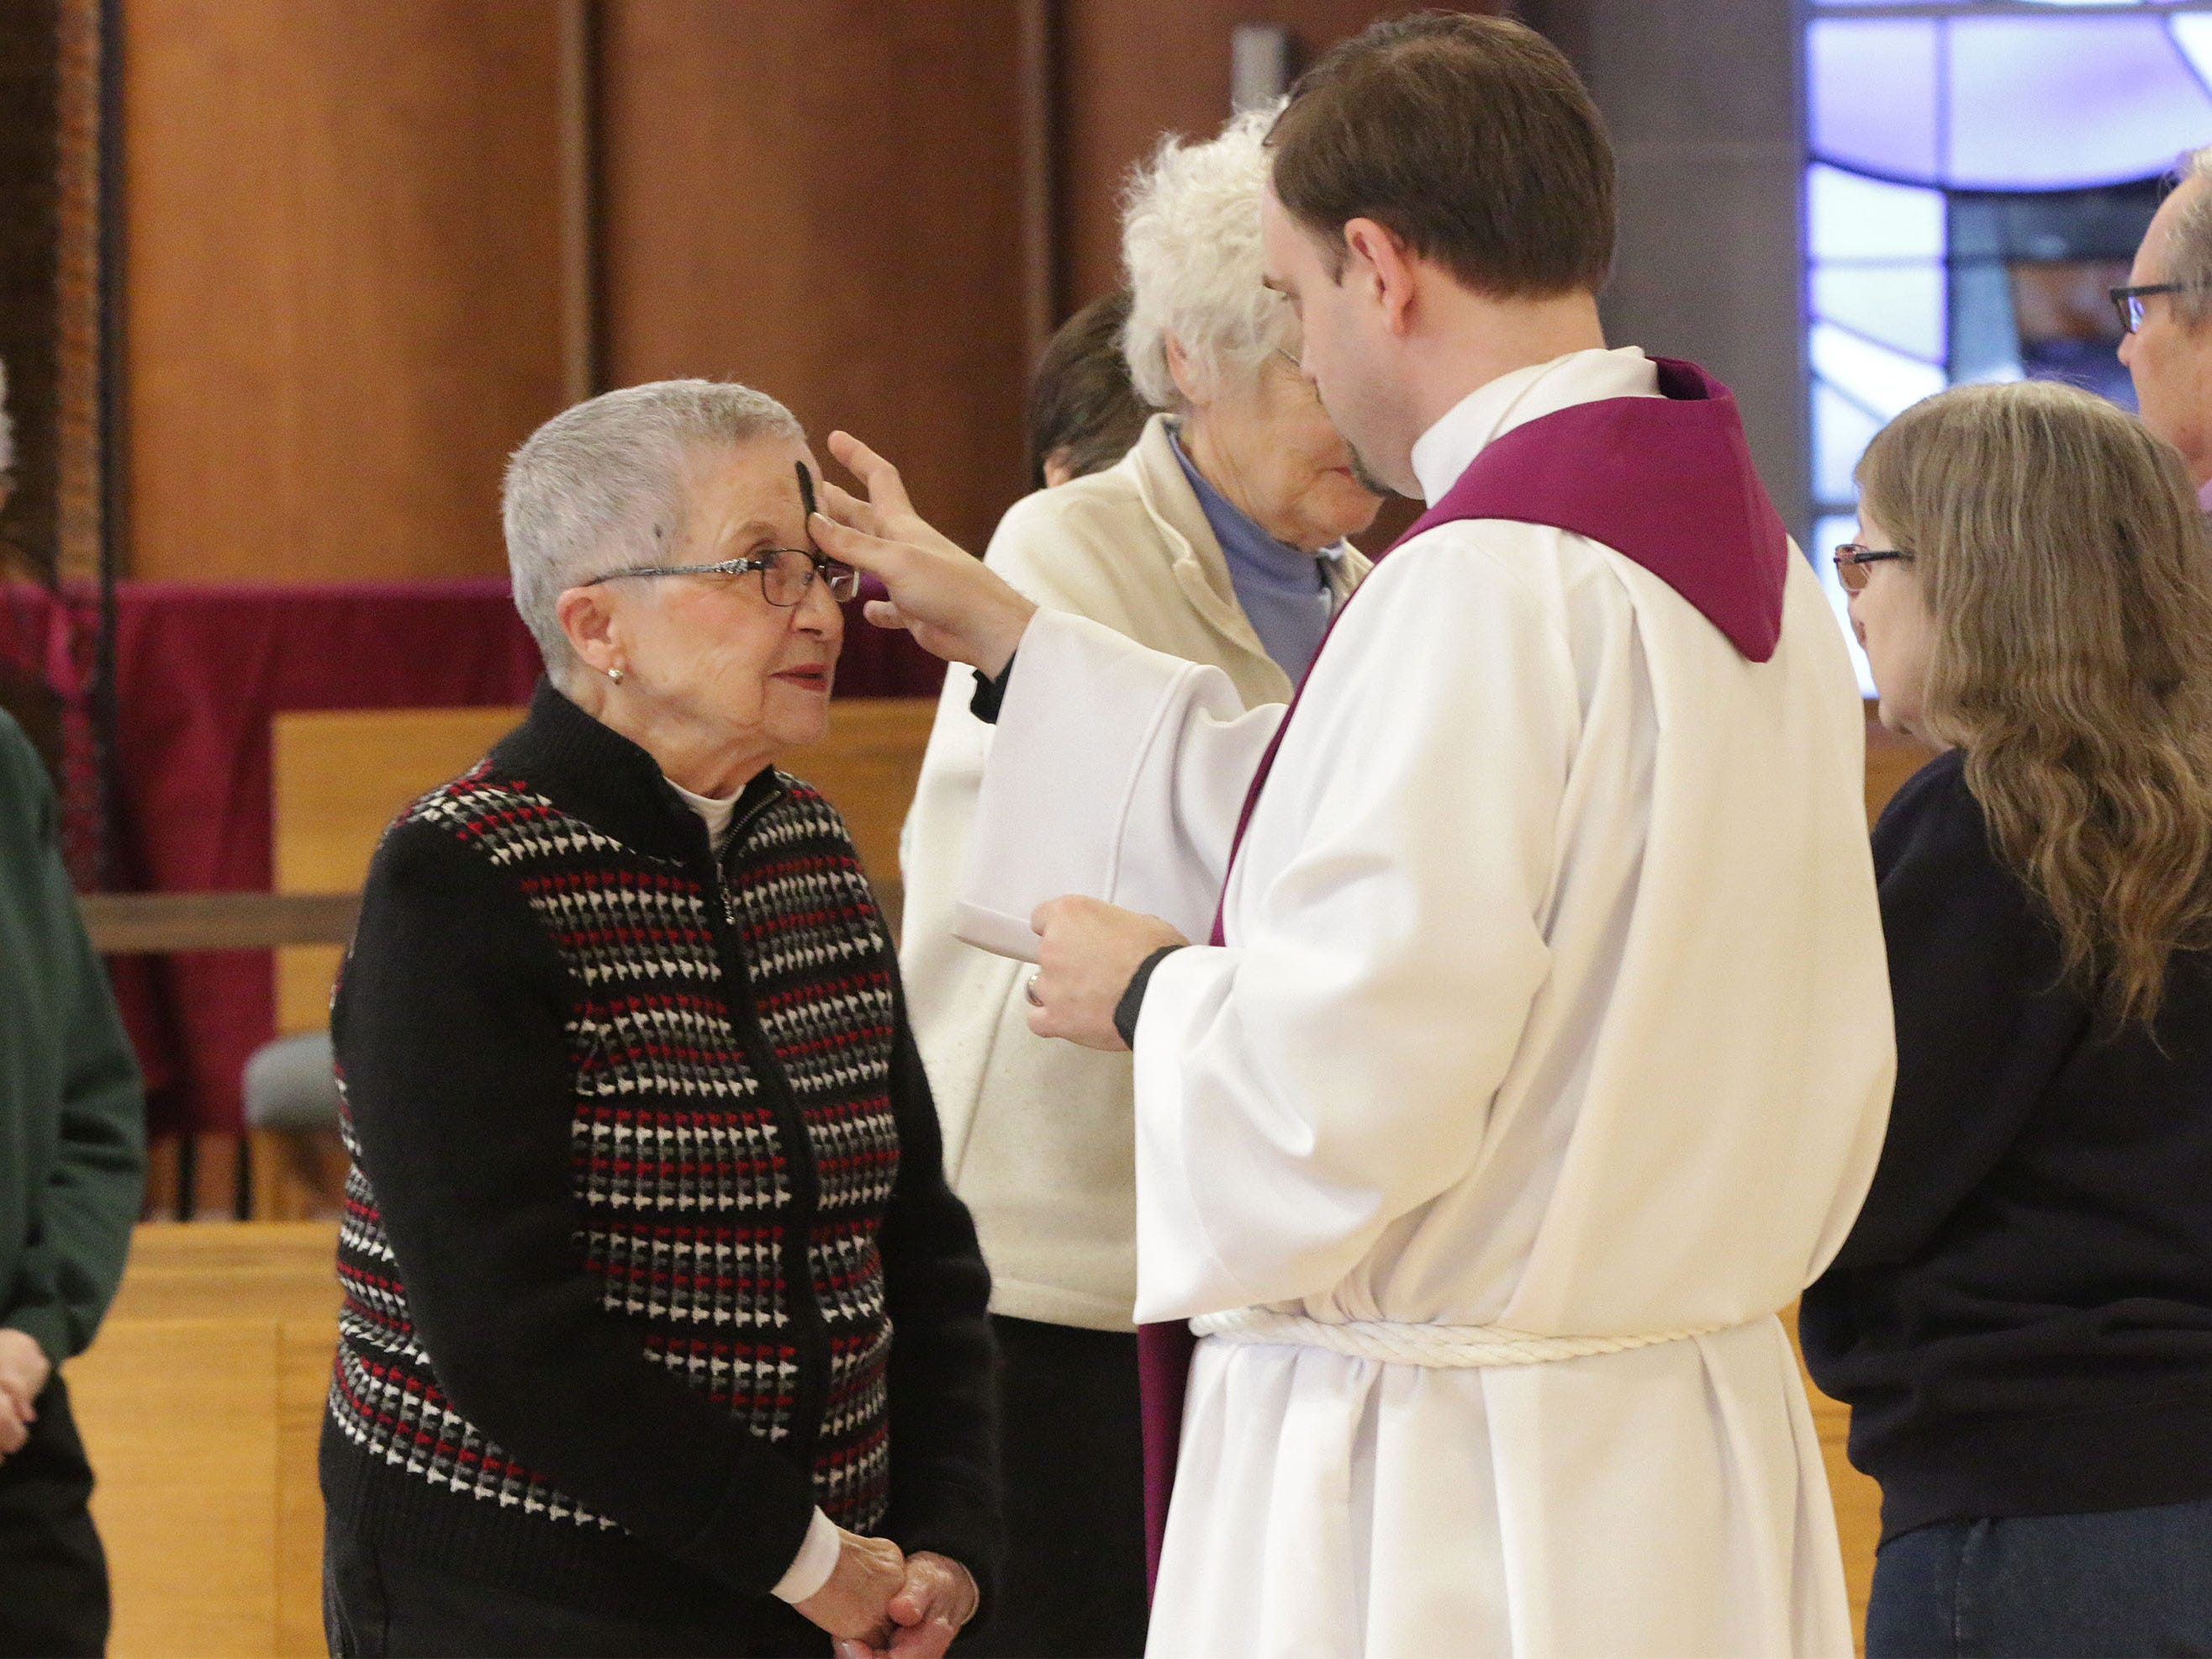 Rev. Matt Hacker, right, places ashes in the sign of the cross on a parishioner during Ash Wednesday service at First United Lutheran Church, Wednesday, March 6, 2019, in Sheboygan, Wis.